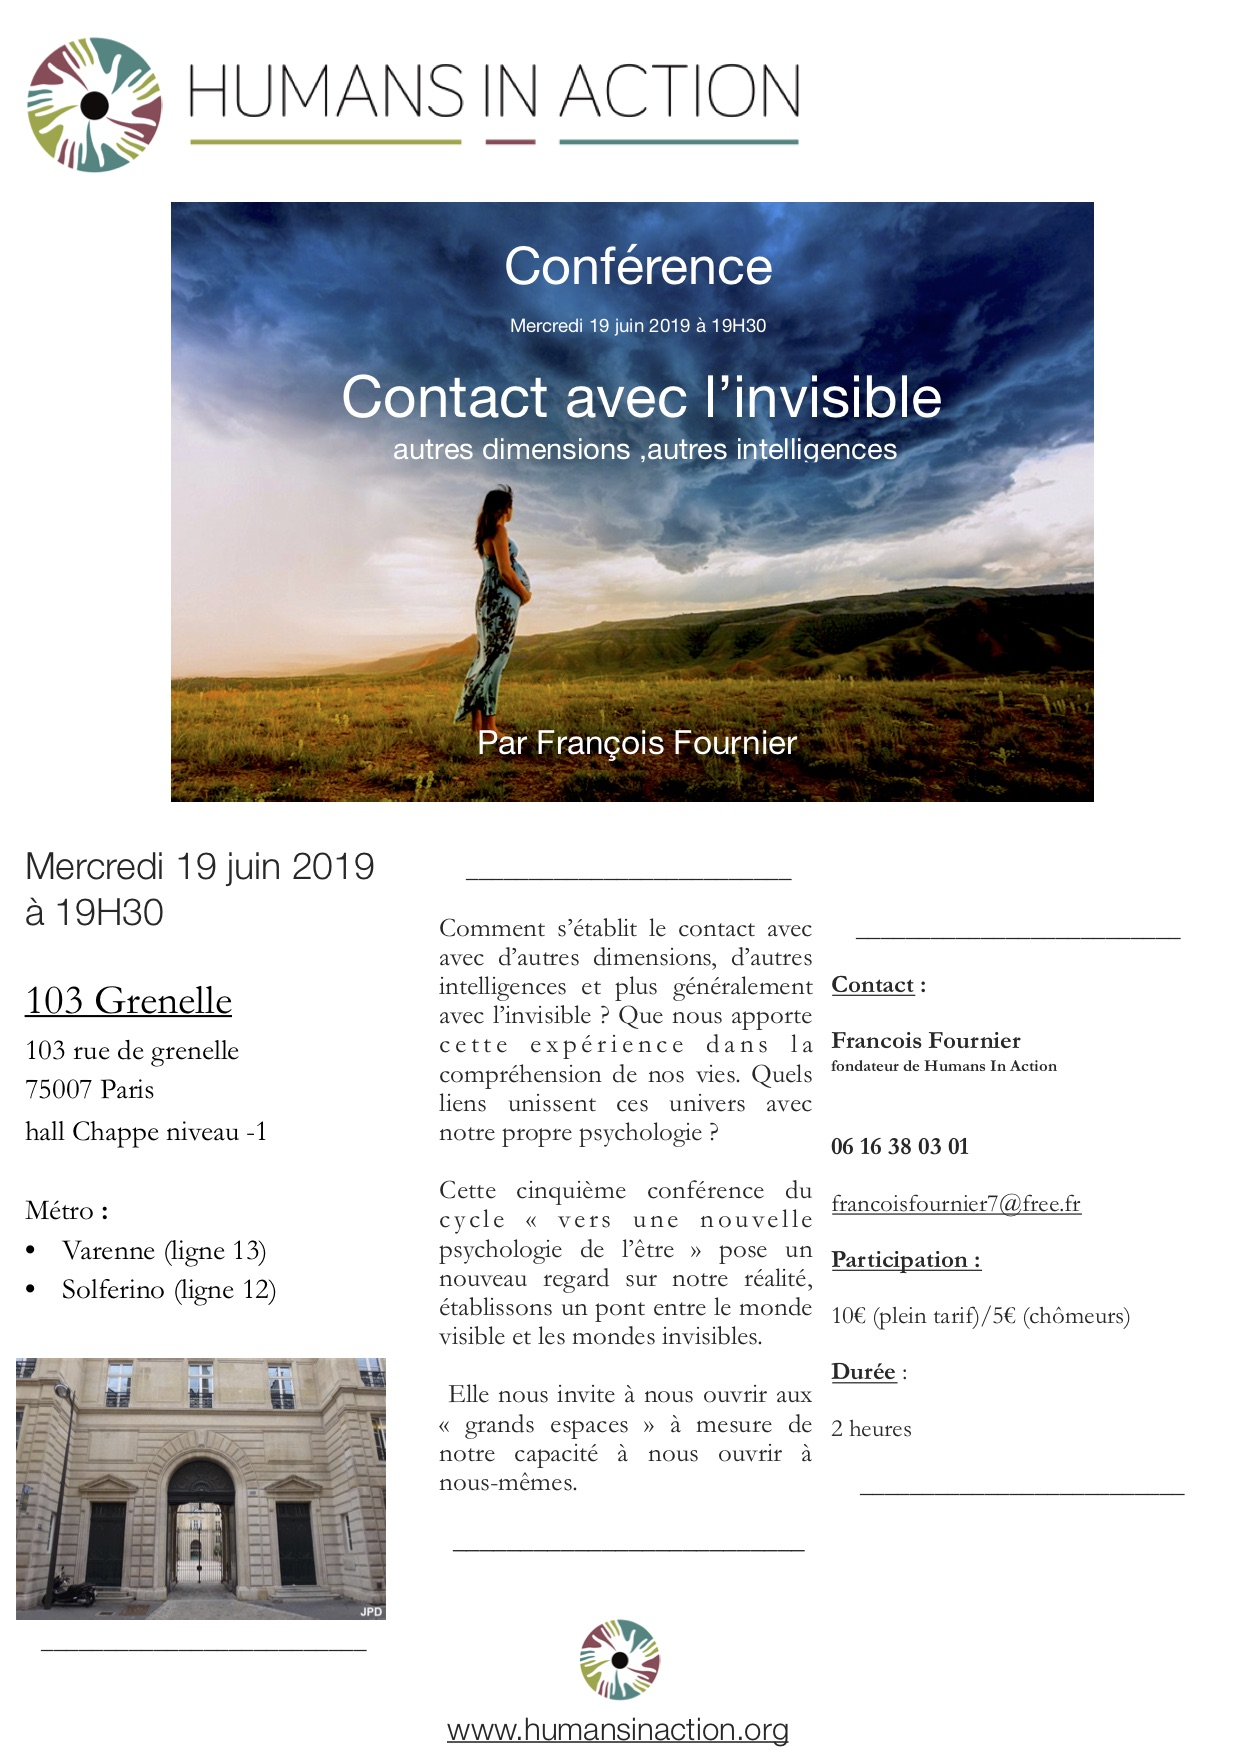 conference contact avec l'invisible.jpg